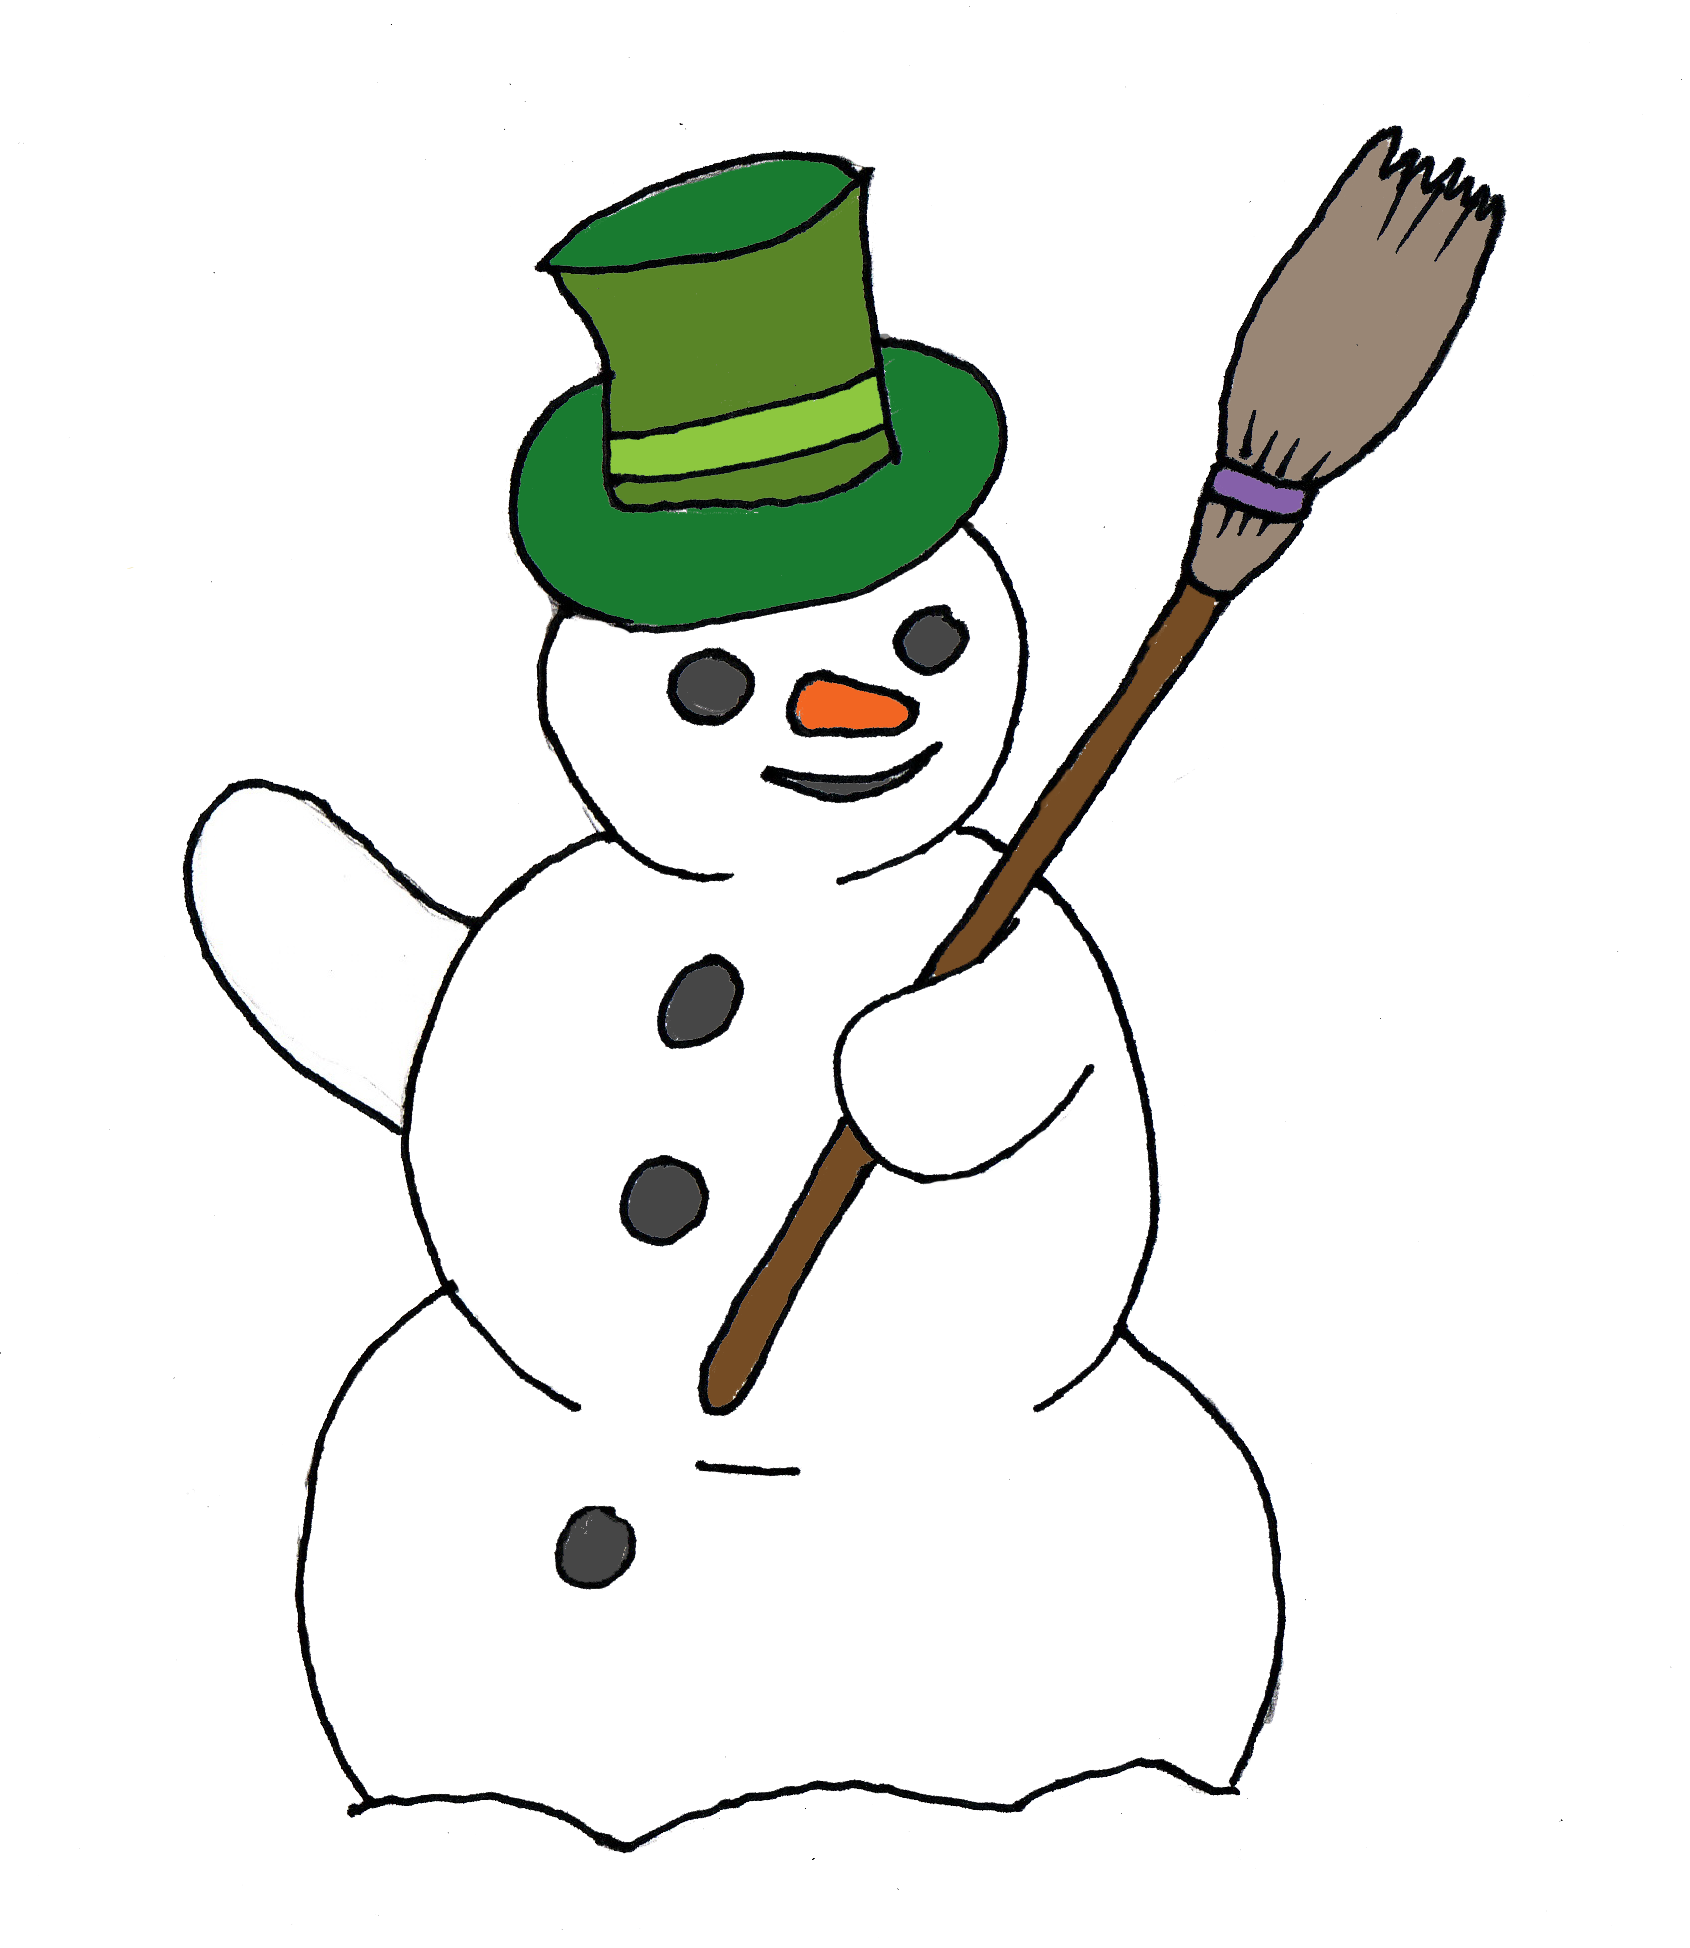 Free border panda images. Olaf clipart abominable snowman